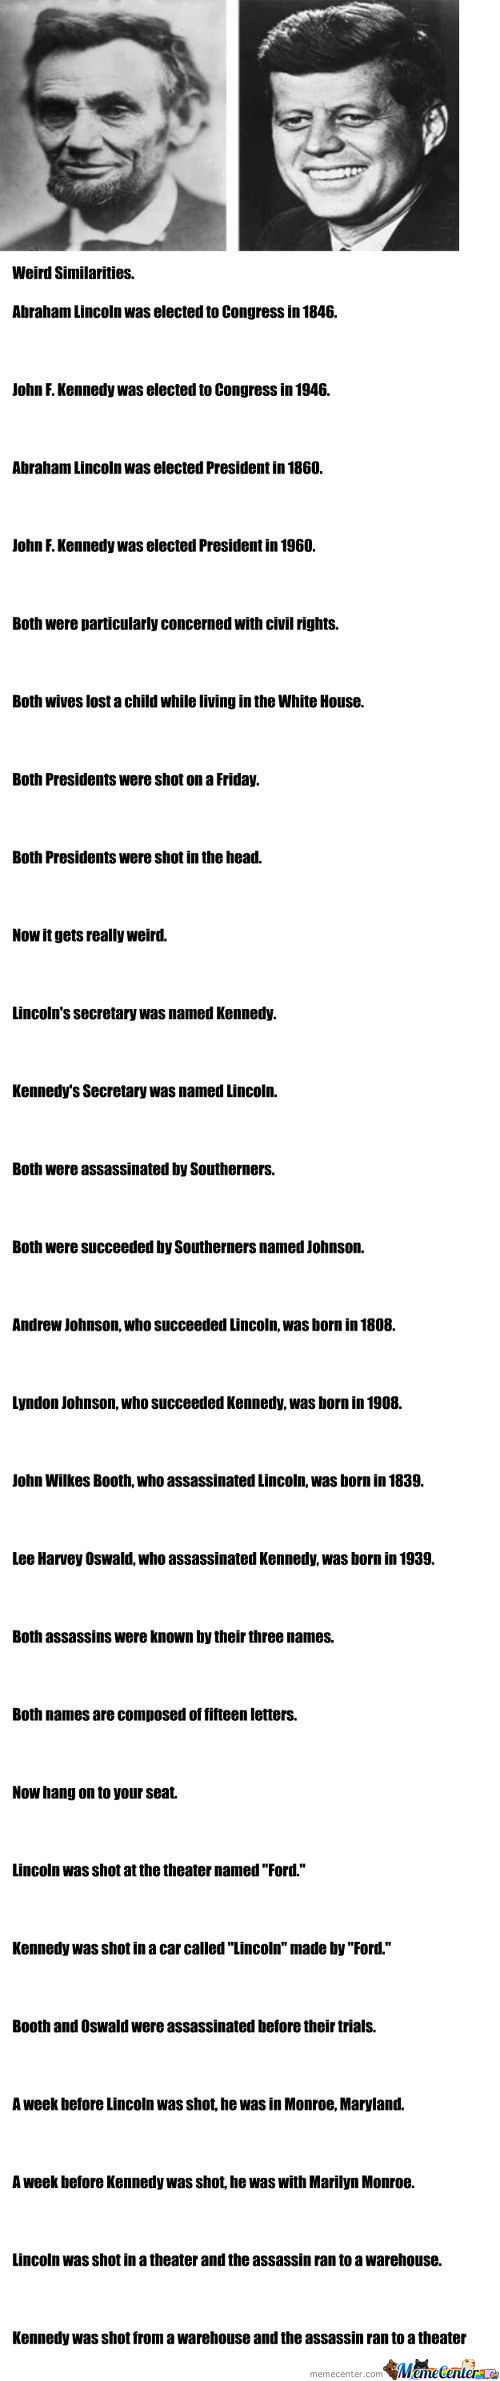 the interesting similarities between john f kennedy and abraham lincoln